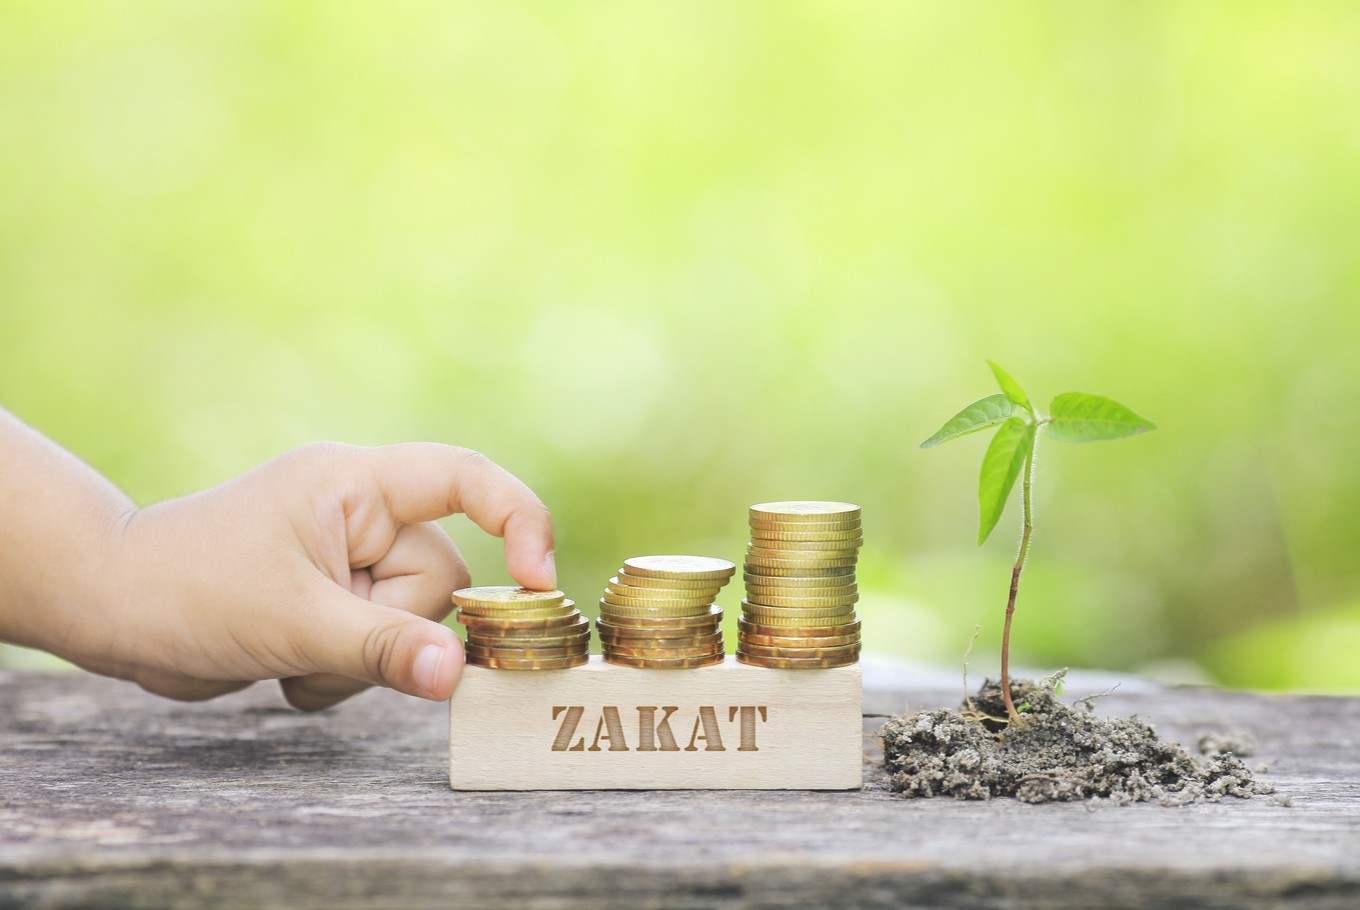 Harmonizing tax and 'zakat'